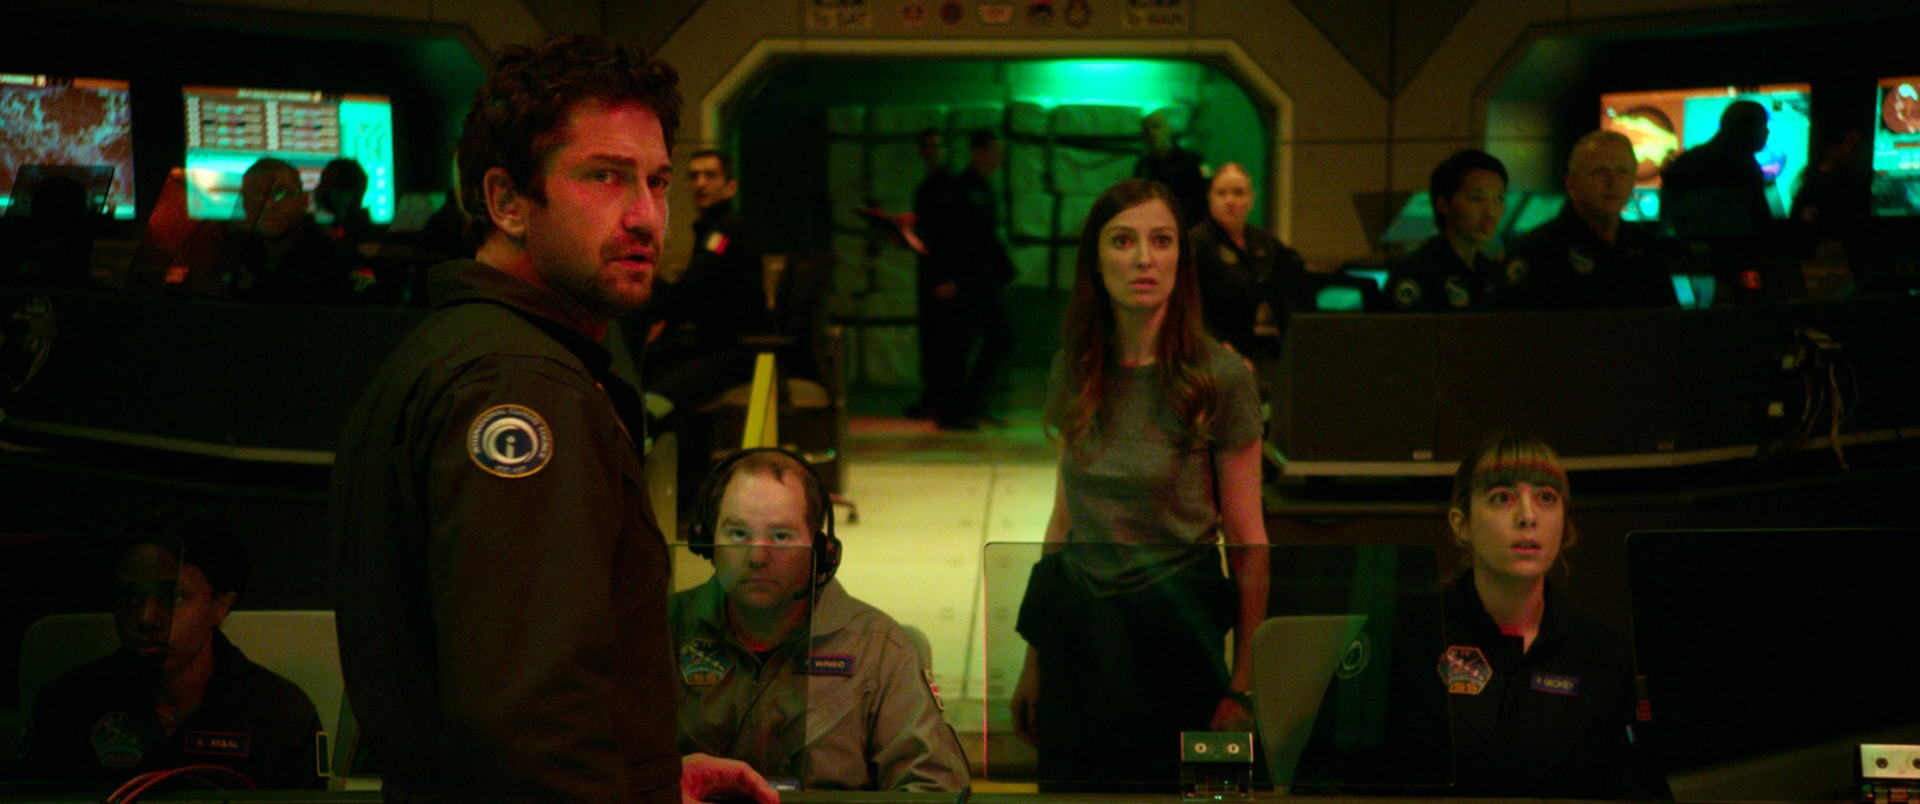 "GERARD BUTLER as Jake Lawson and ALEXANDRA MARIA LARA as Ute Fassbinder in Warner Bros. Pictures' and Skydance's suspense thriller ""GEOSTORM,"" a Warner Bros. Pictures release."